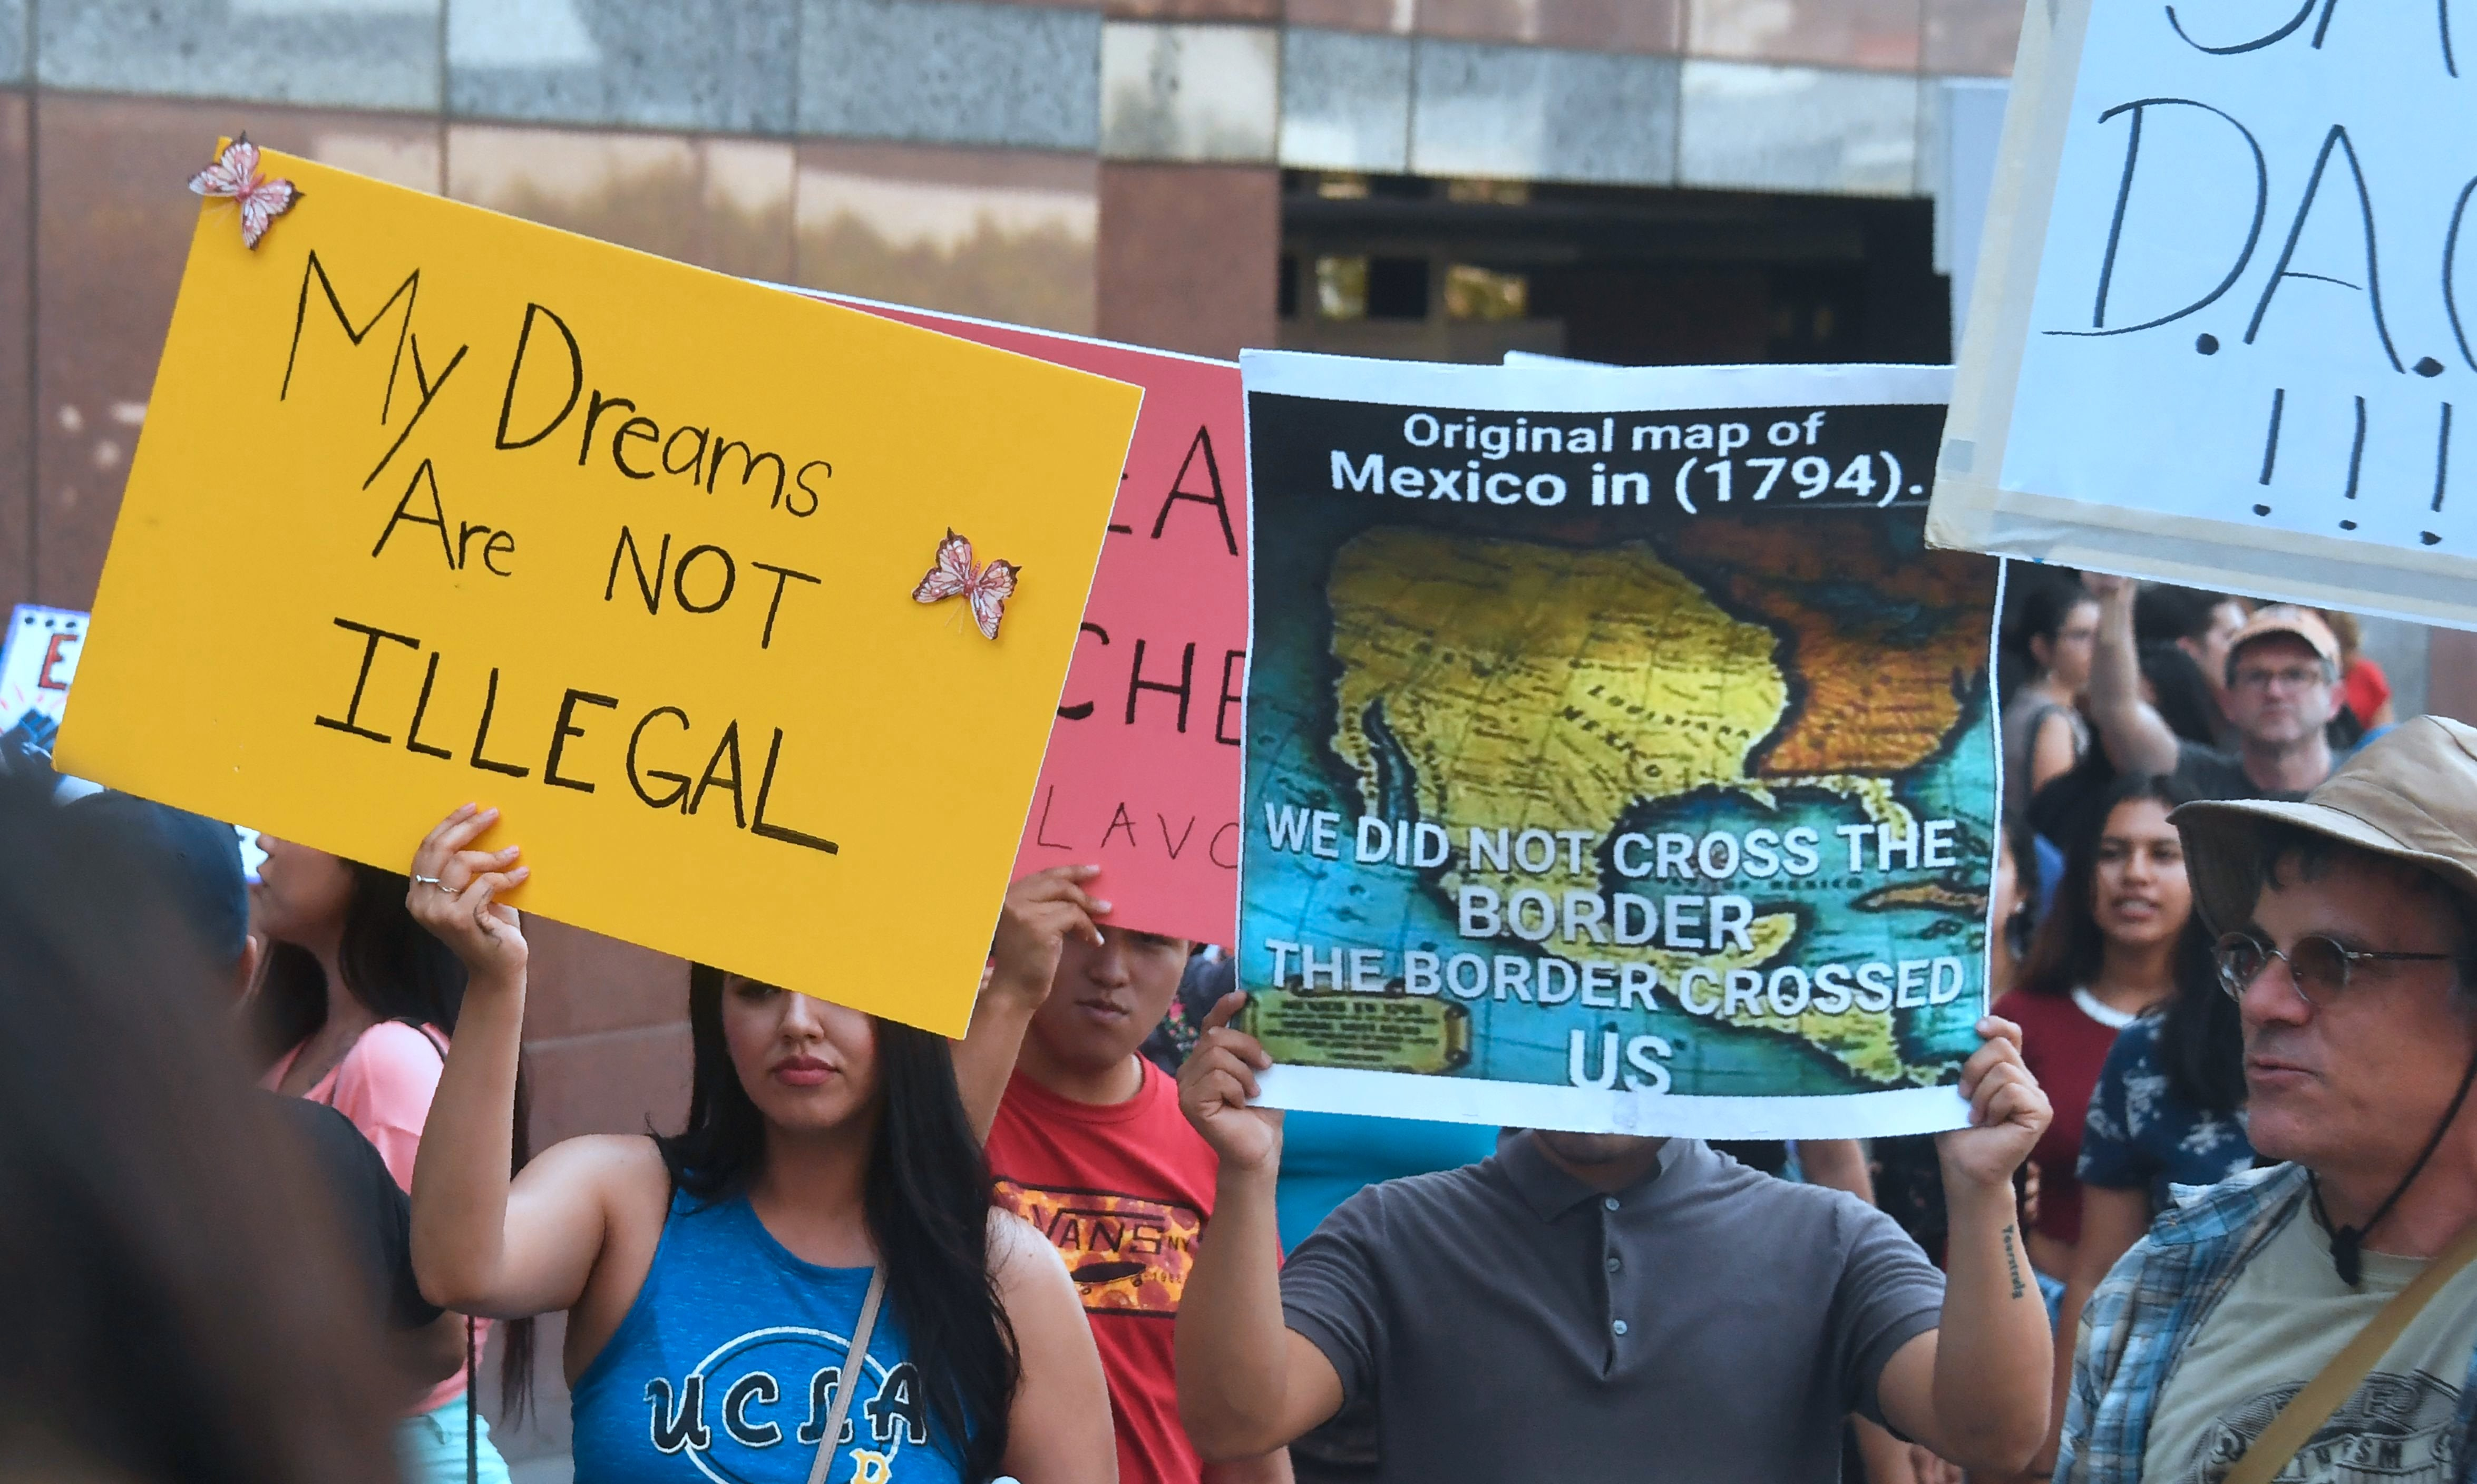 Here's How Much Money Rescinding DACA Could Cost The U.S. Economy